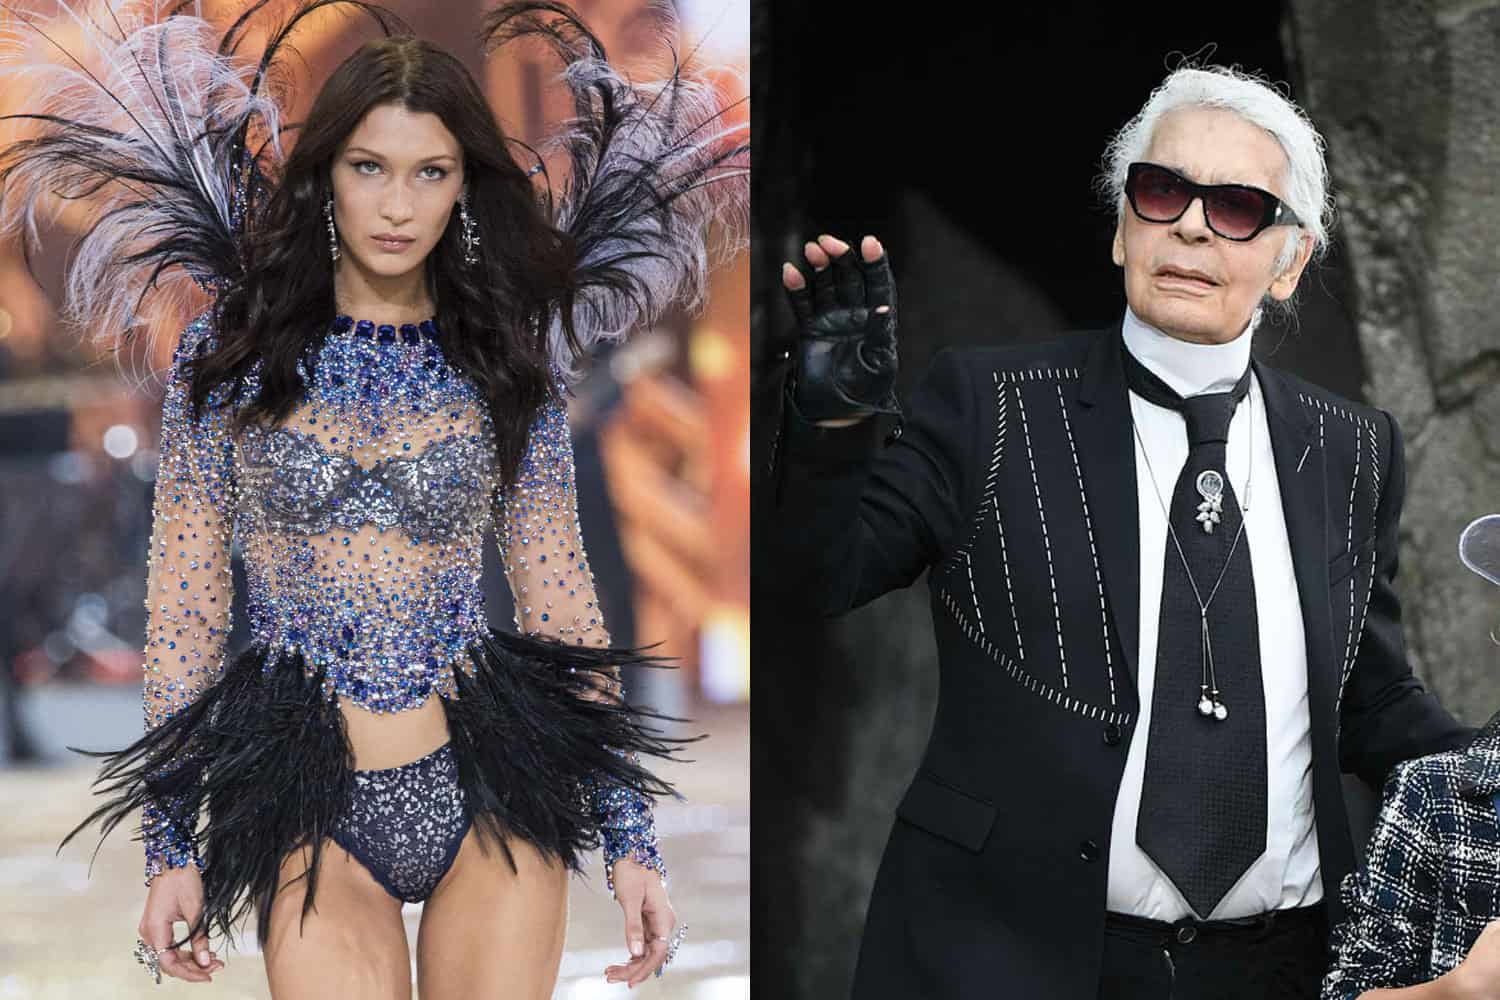 ba5ab9f57733 Financial Trouble at Victoria's Secret, Chanel's Lawyers Strike Again